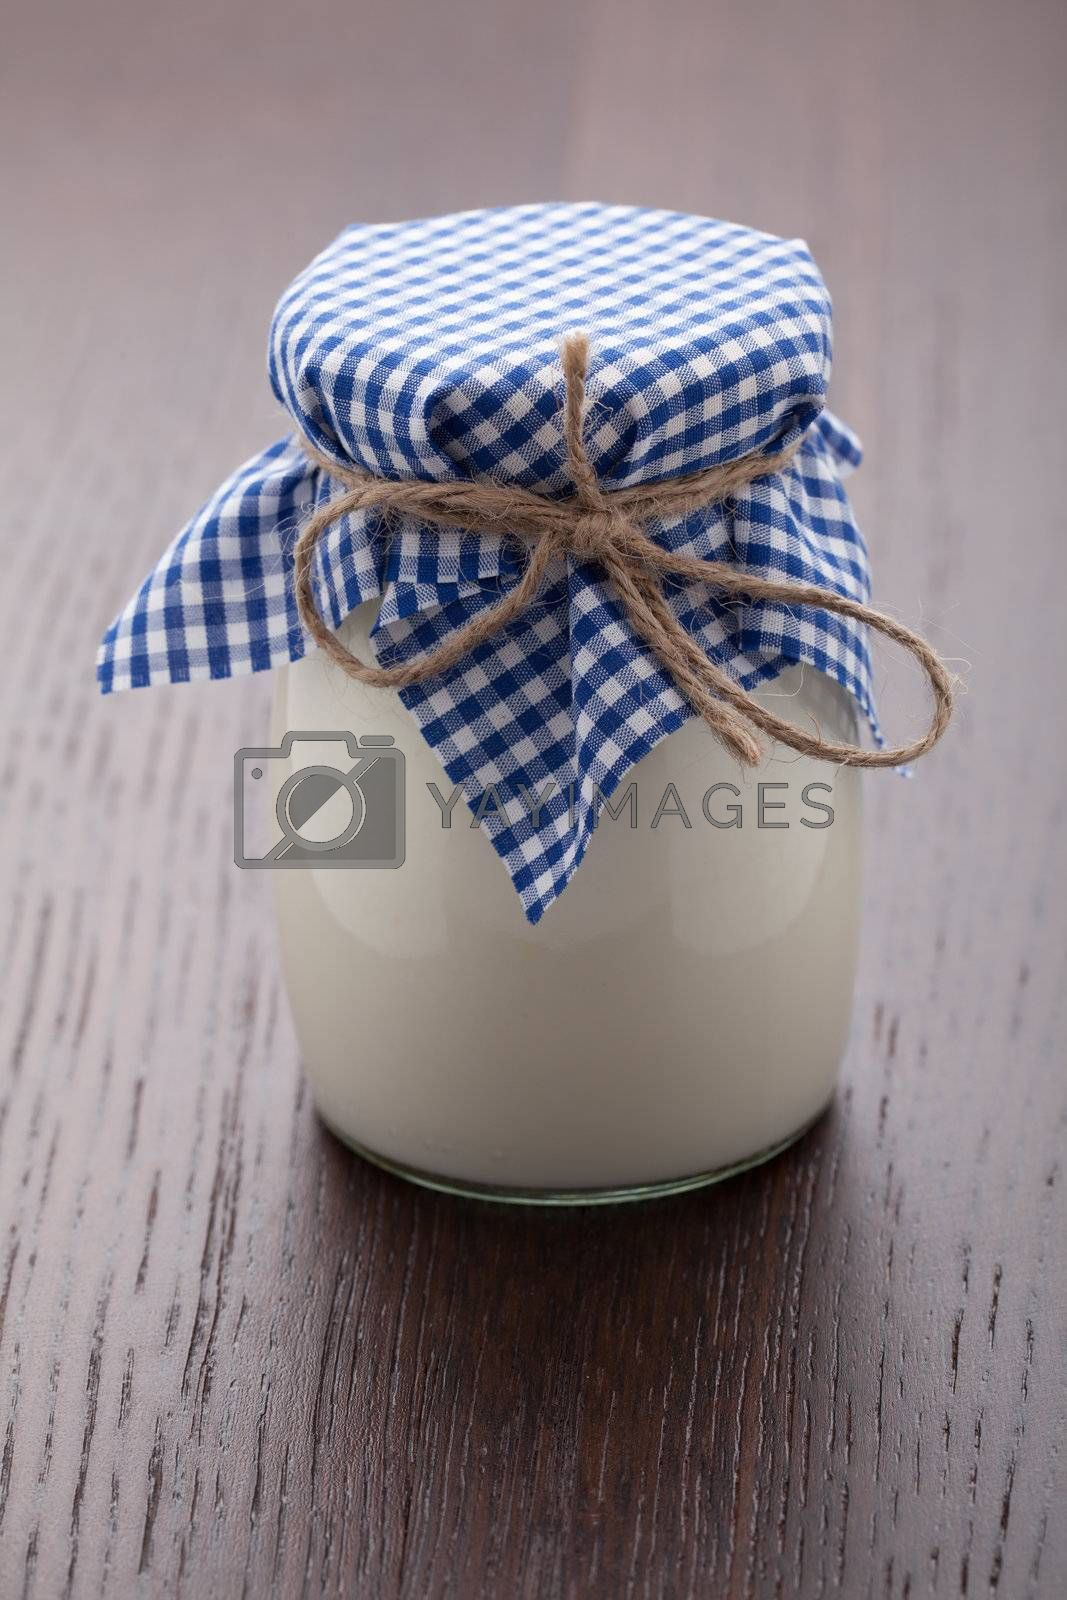 Homemade milk yogurt in glass pot served with linen napkin on wooden table